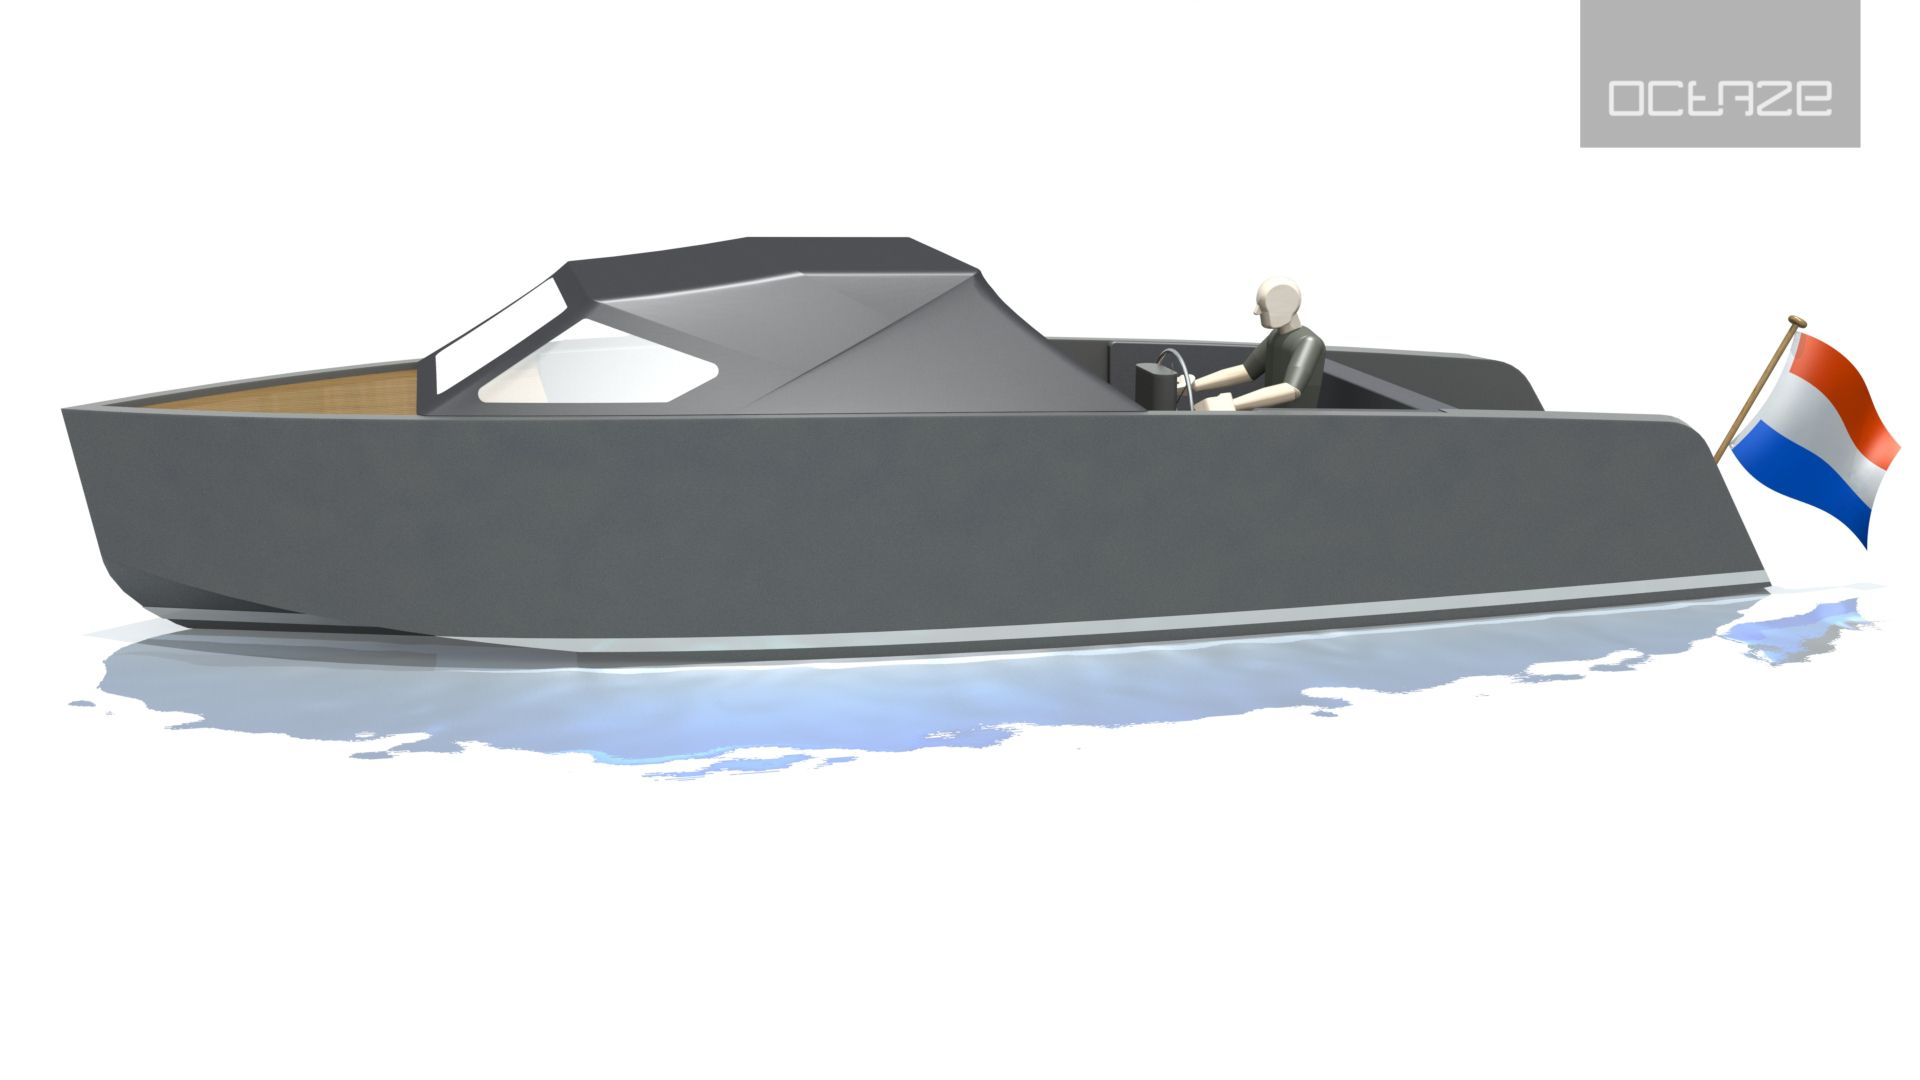 Home built jet dinghy s from new zealand boat design forums - Gallery Of Home Built Jet Dinghy S From New Zealand Boat Design Forums